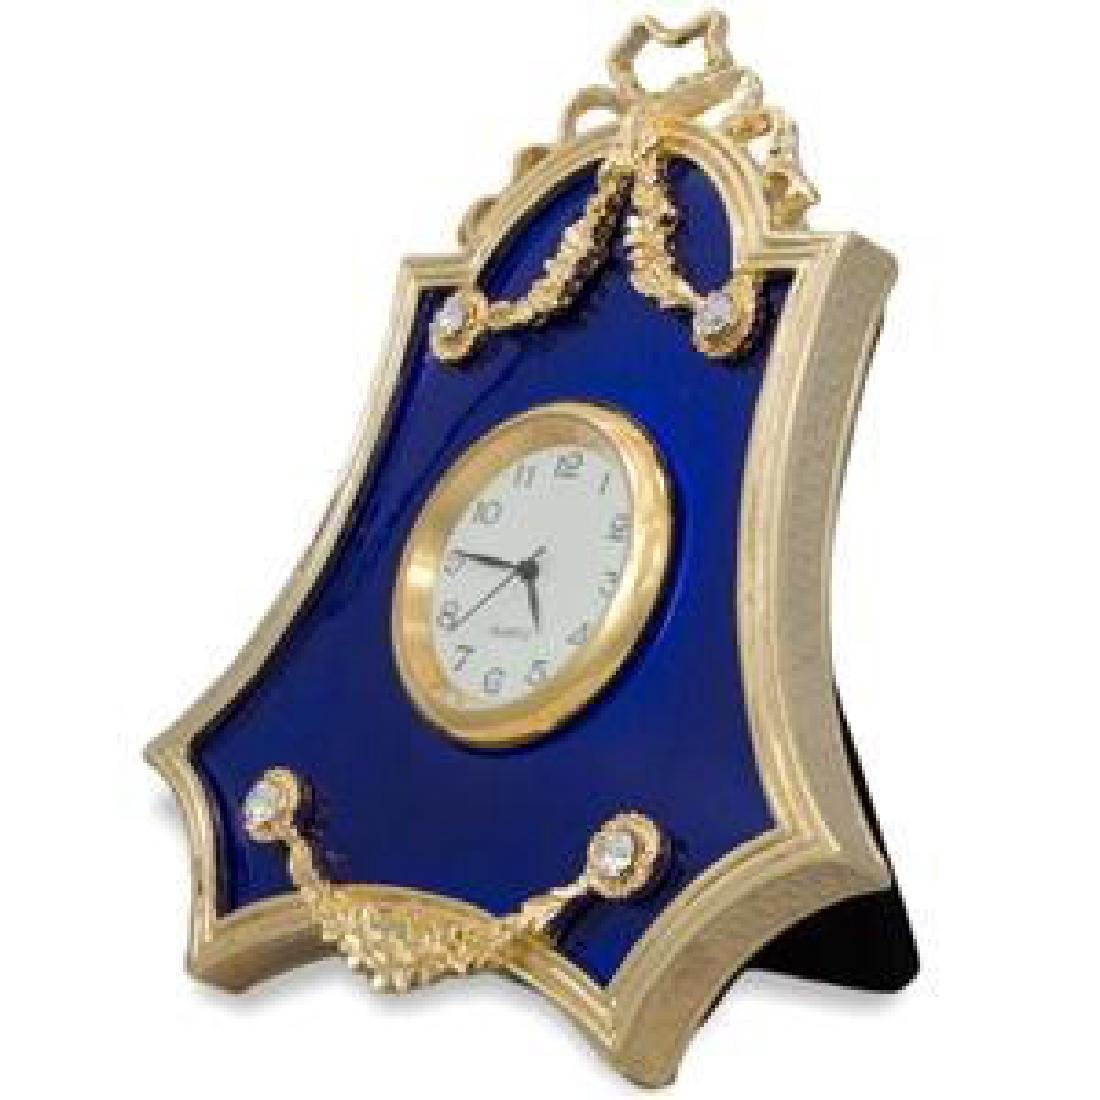 Faberge Inspired, Royal Blue Guilloche Enamel Russian